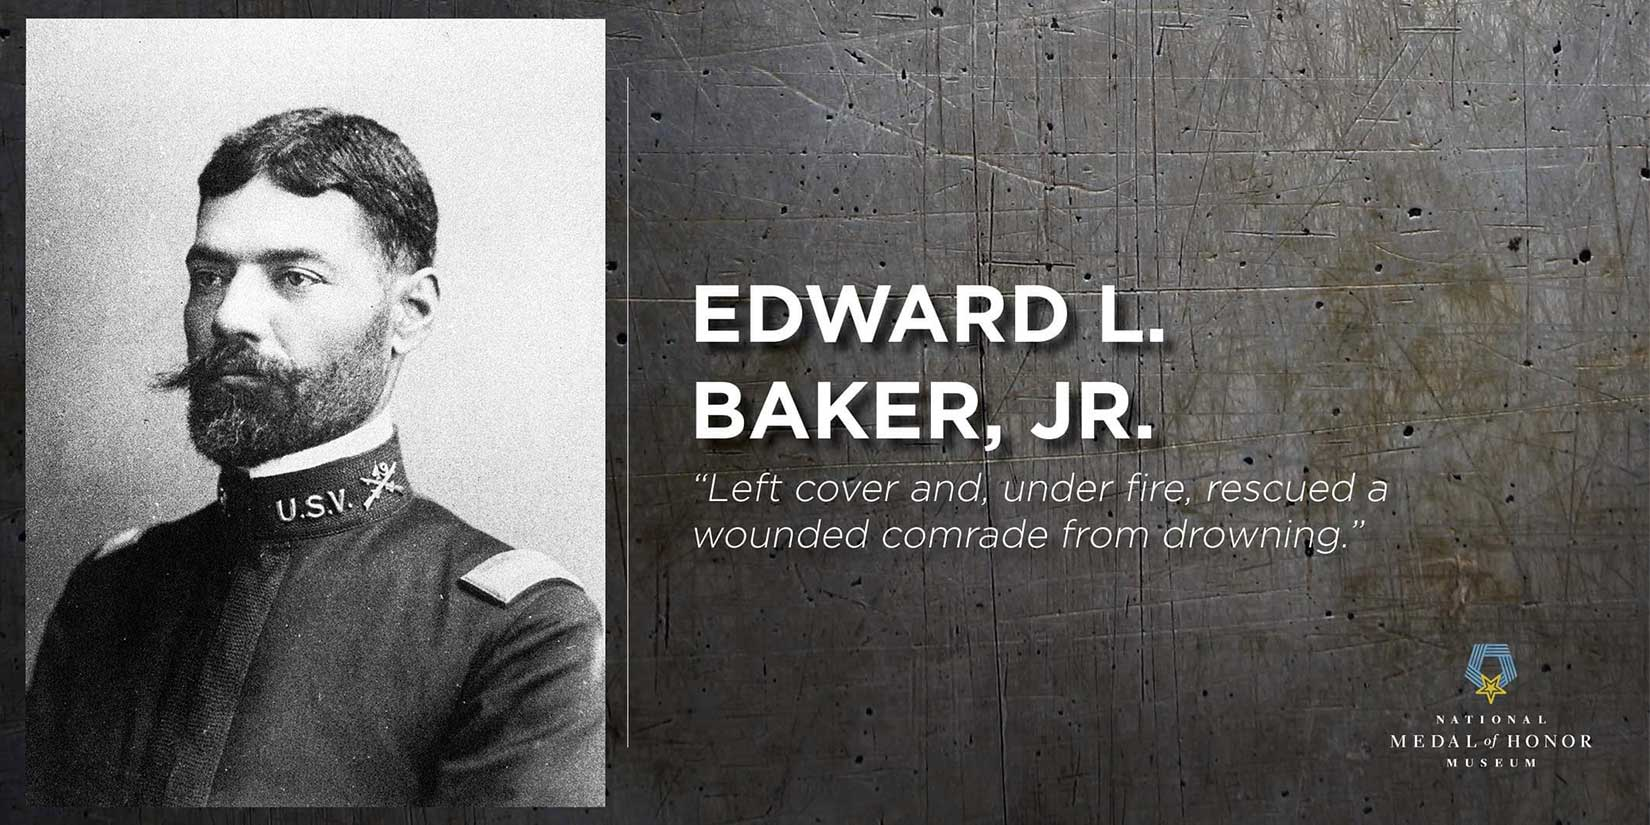 Edward-Baker-Medal-of-Honor-Cuba